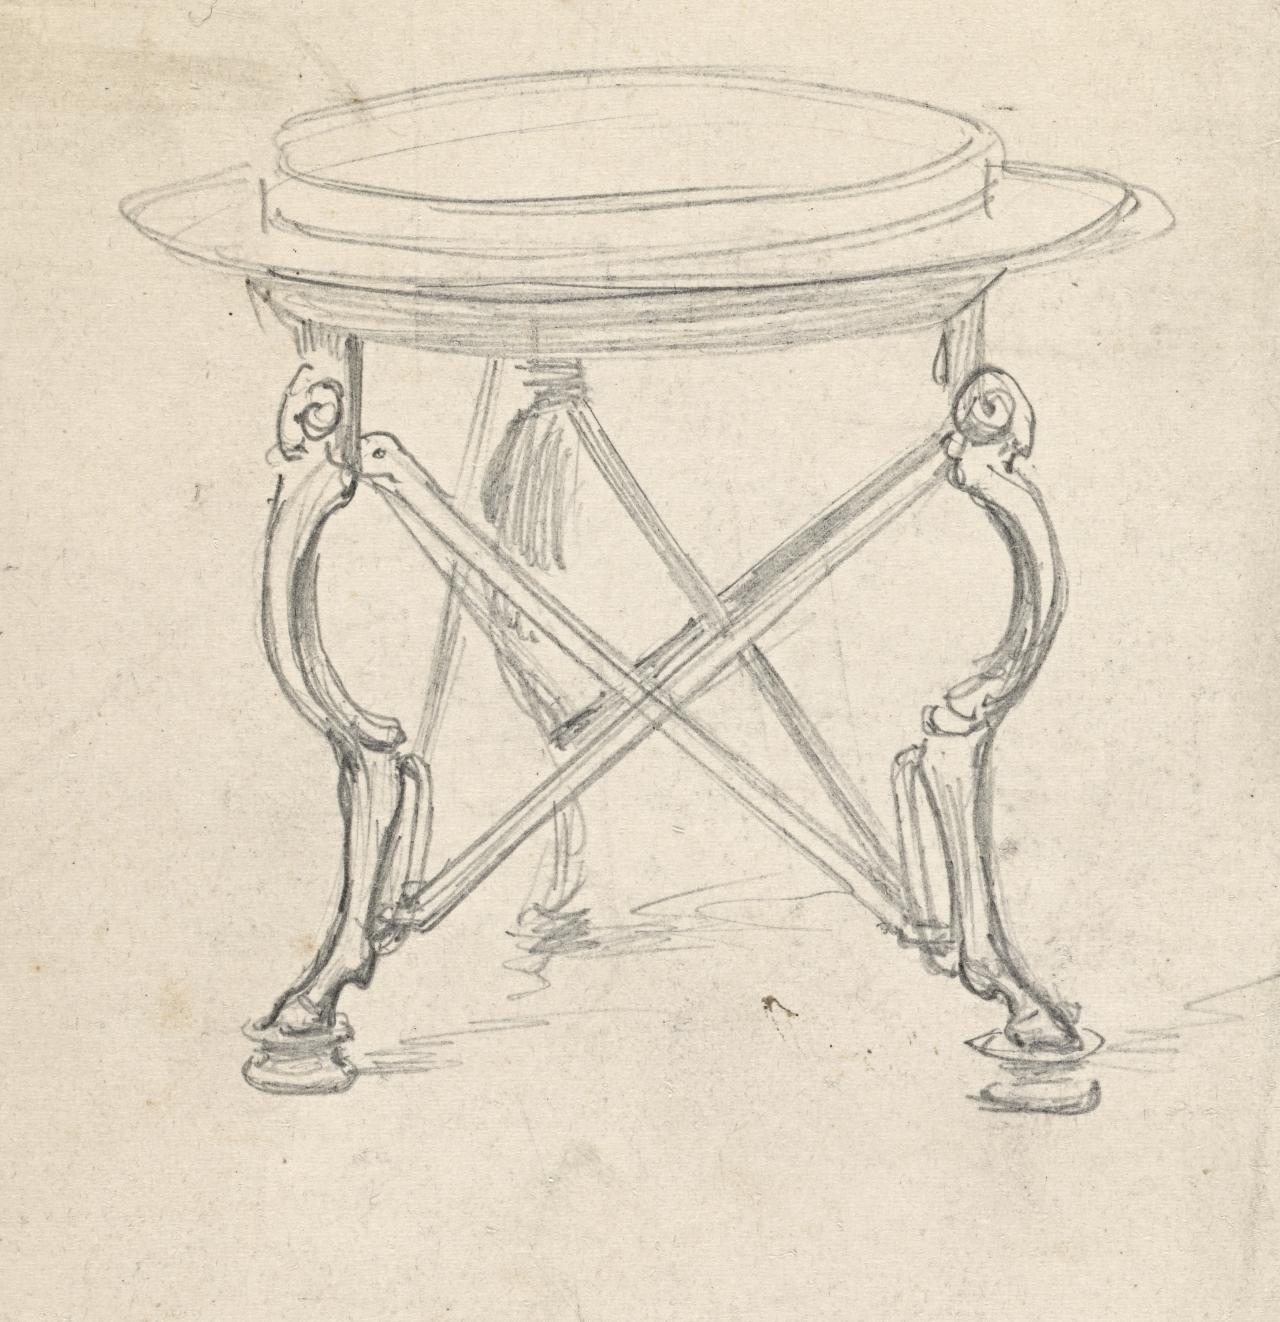 Sketch of tripod table for Sleep